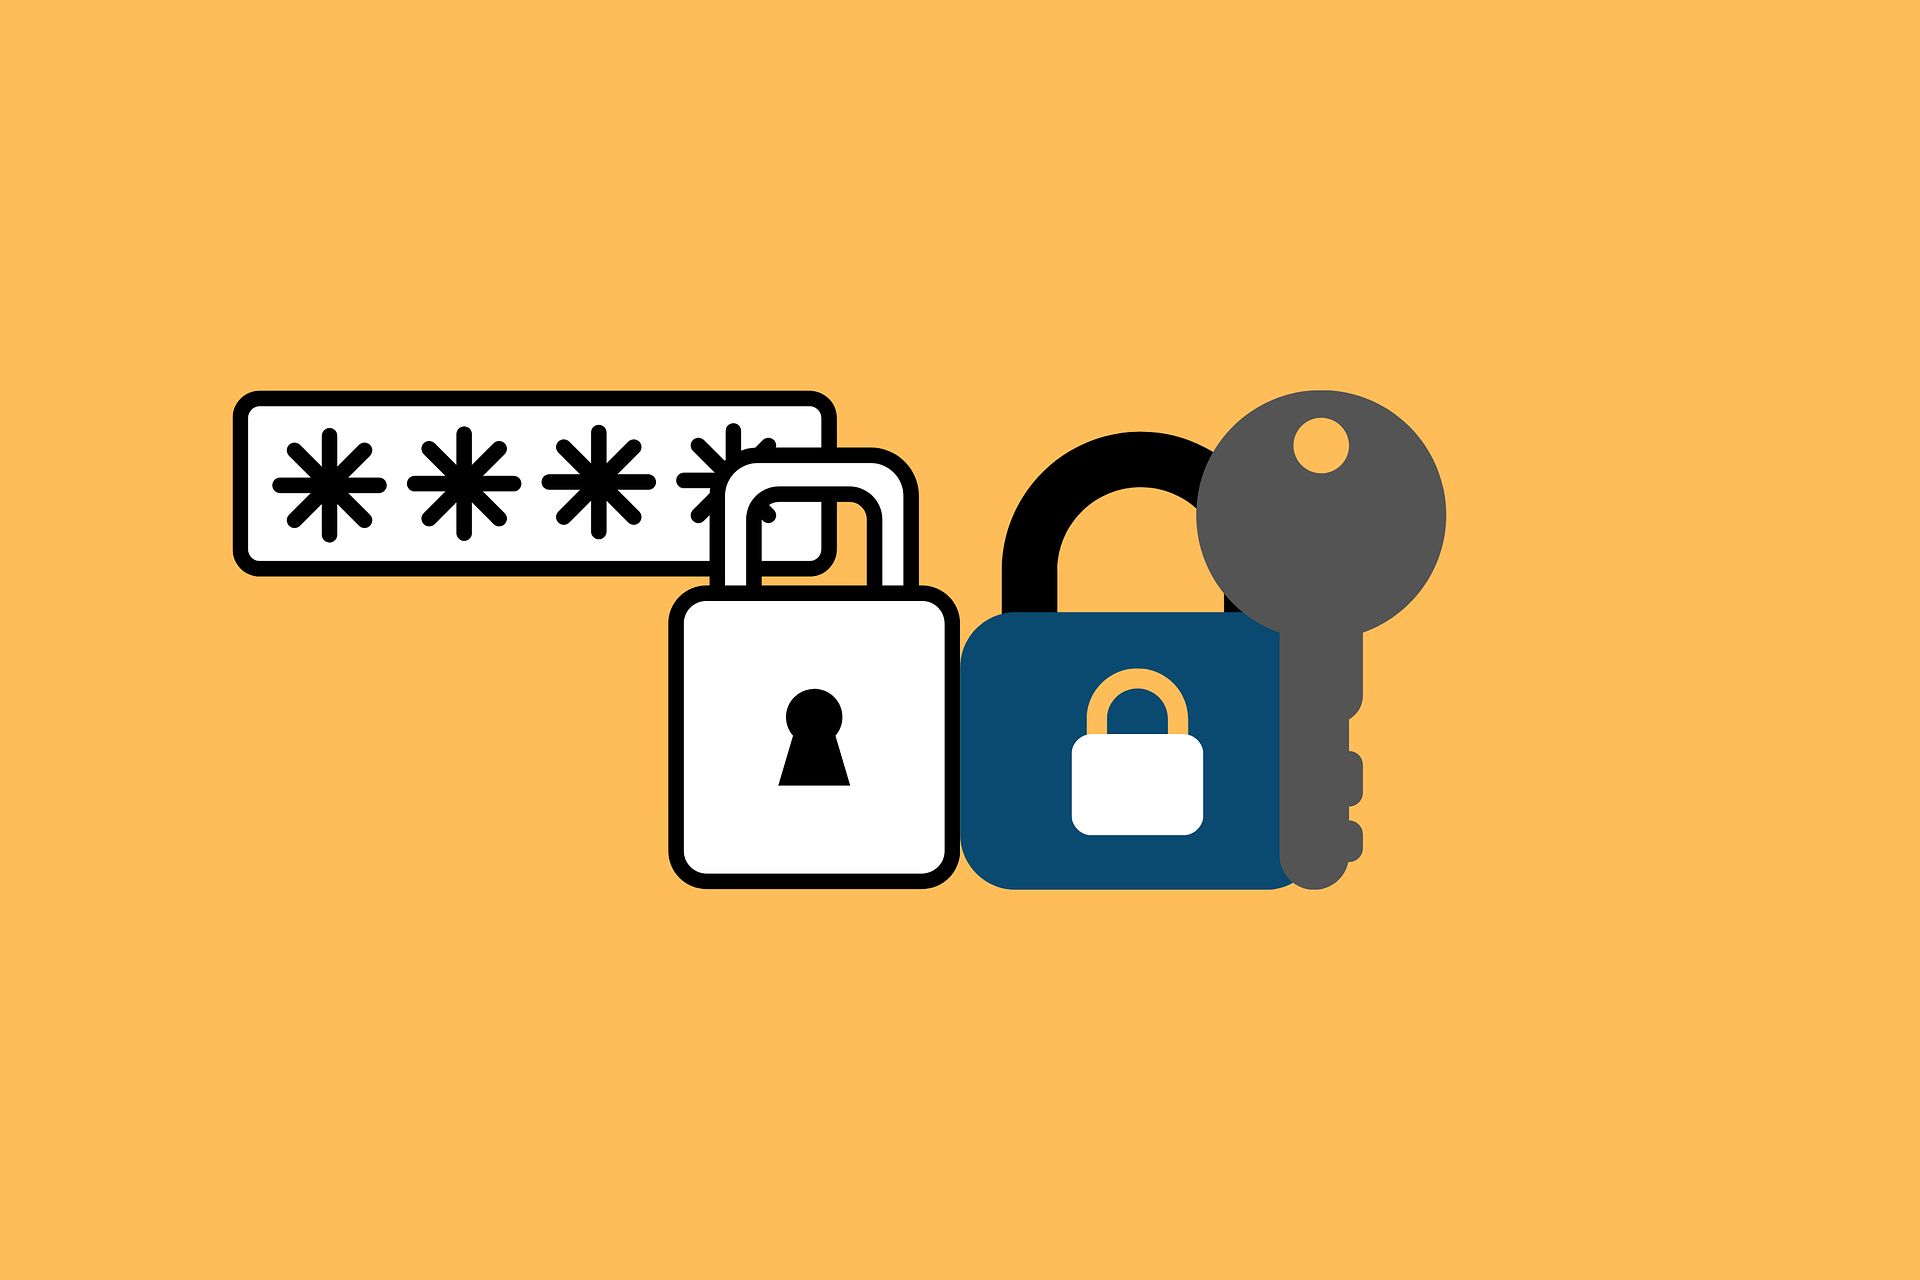 Tips on Cybersecurity for Students and Teachers